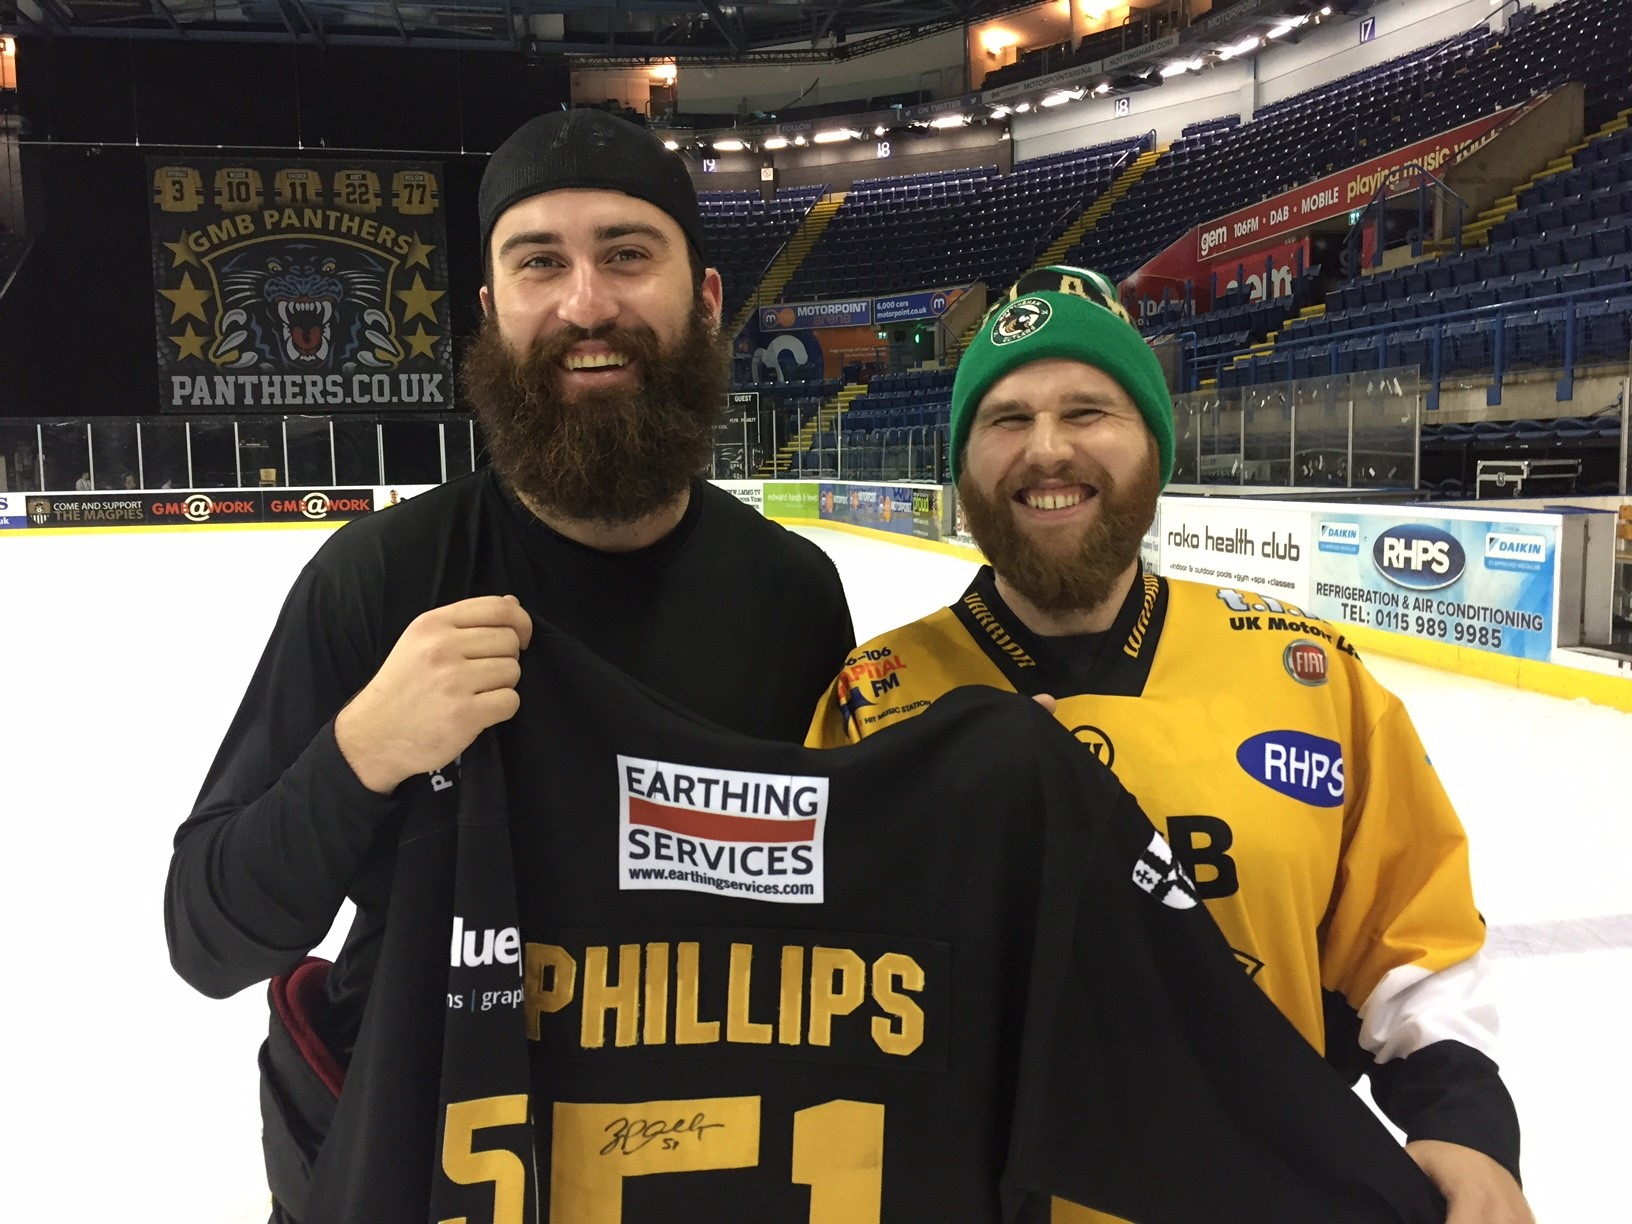 Phillips jersey goes to fan volunteer Top Image